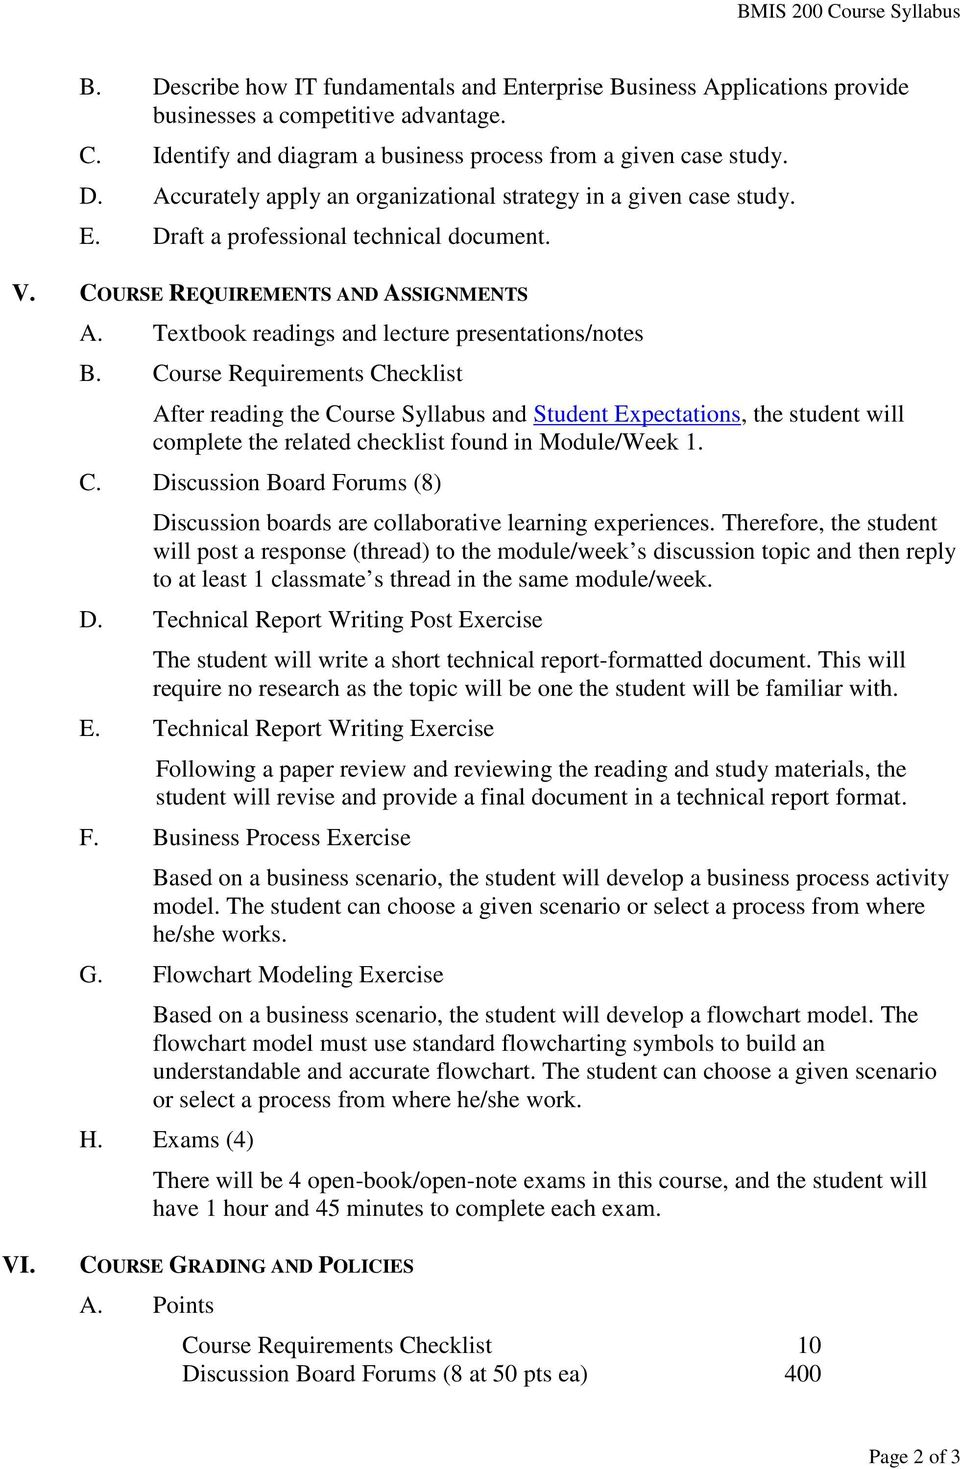 Course Requirements Checklist After reading the Course Syllabus and Student Expectations, the student will complete the related checklist found in Module/Week 1. C. Discussion Board Forums (8) Discussion boards are collaborative learning experiences.